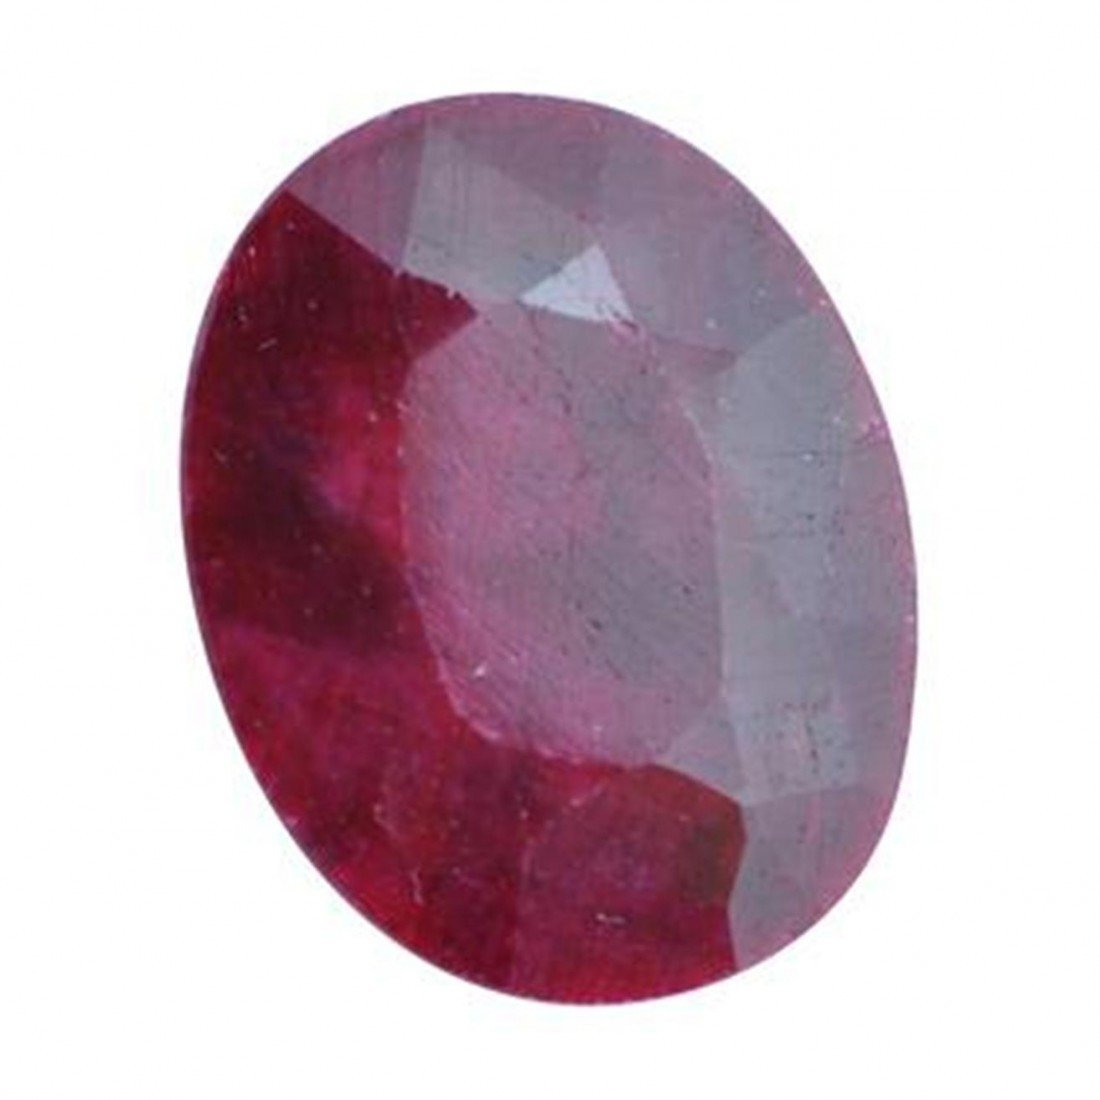 4Q: A 1 ct. Ruby Gem